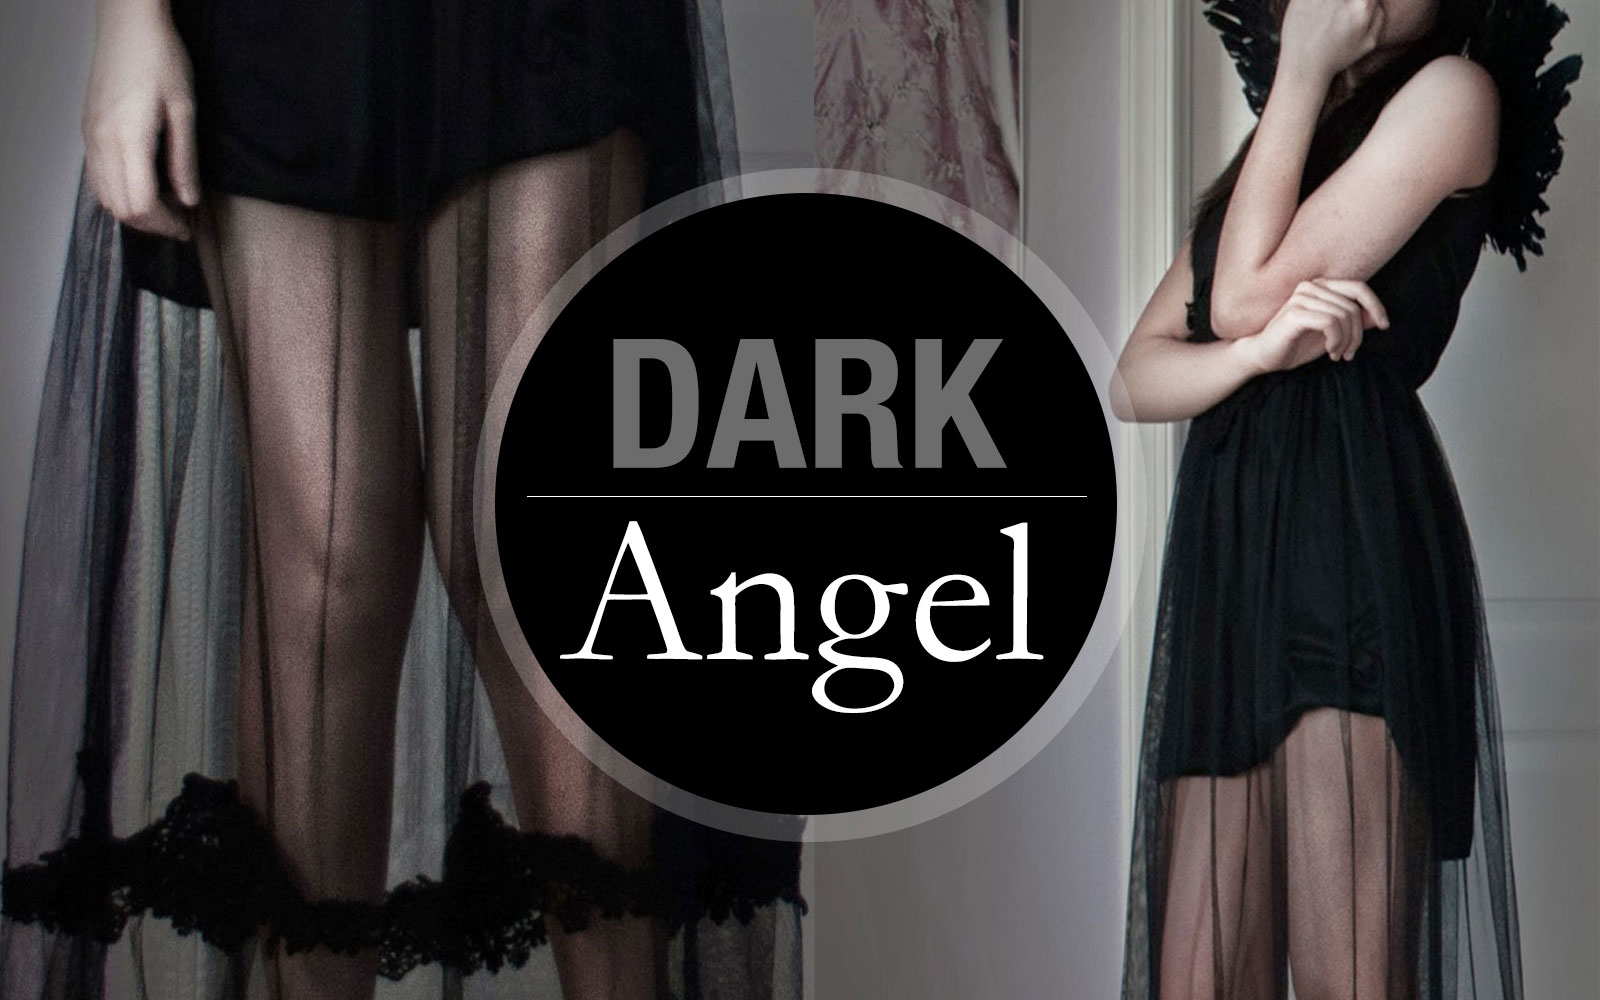 Dark Angel Halloween Look: Create a last-minute Halloween costume with just a sheer maxi dress, black wedges, and a set of angel wings